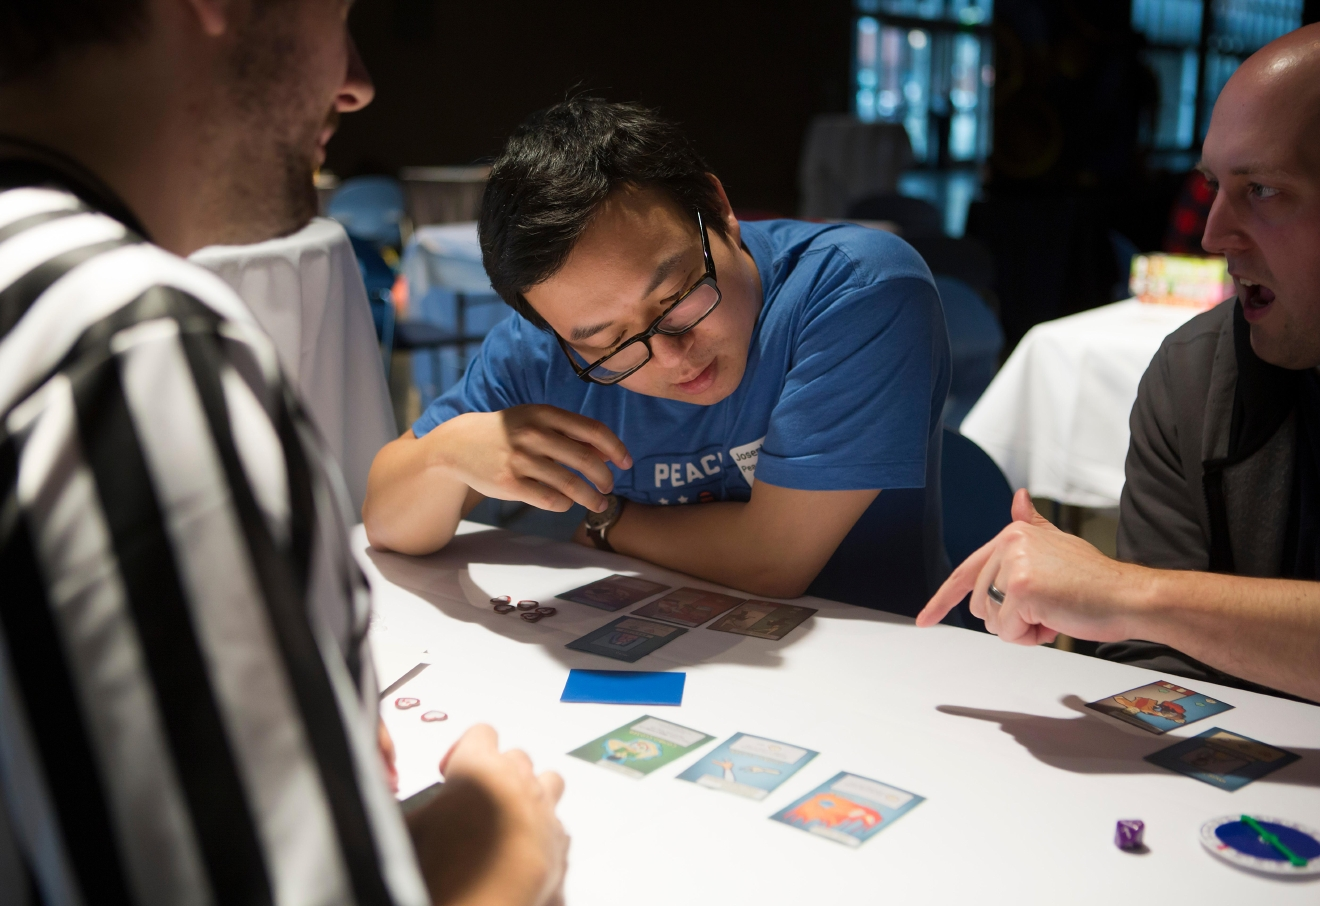 Joseph Chen follows along as he learns the board game titled Beatdown: at the 6th annual Geekwire Bash at the CenturyLink Event Center. (Sy Bean / Seattle Refined)